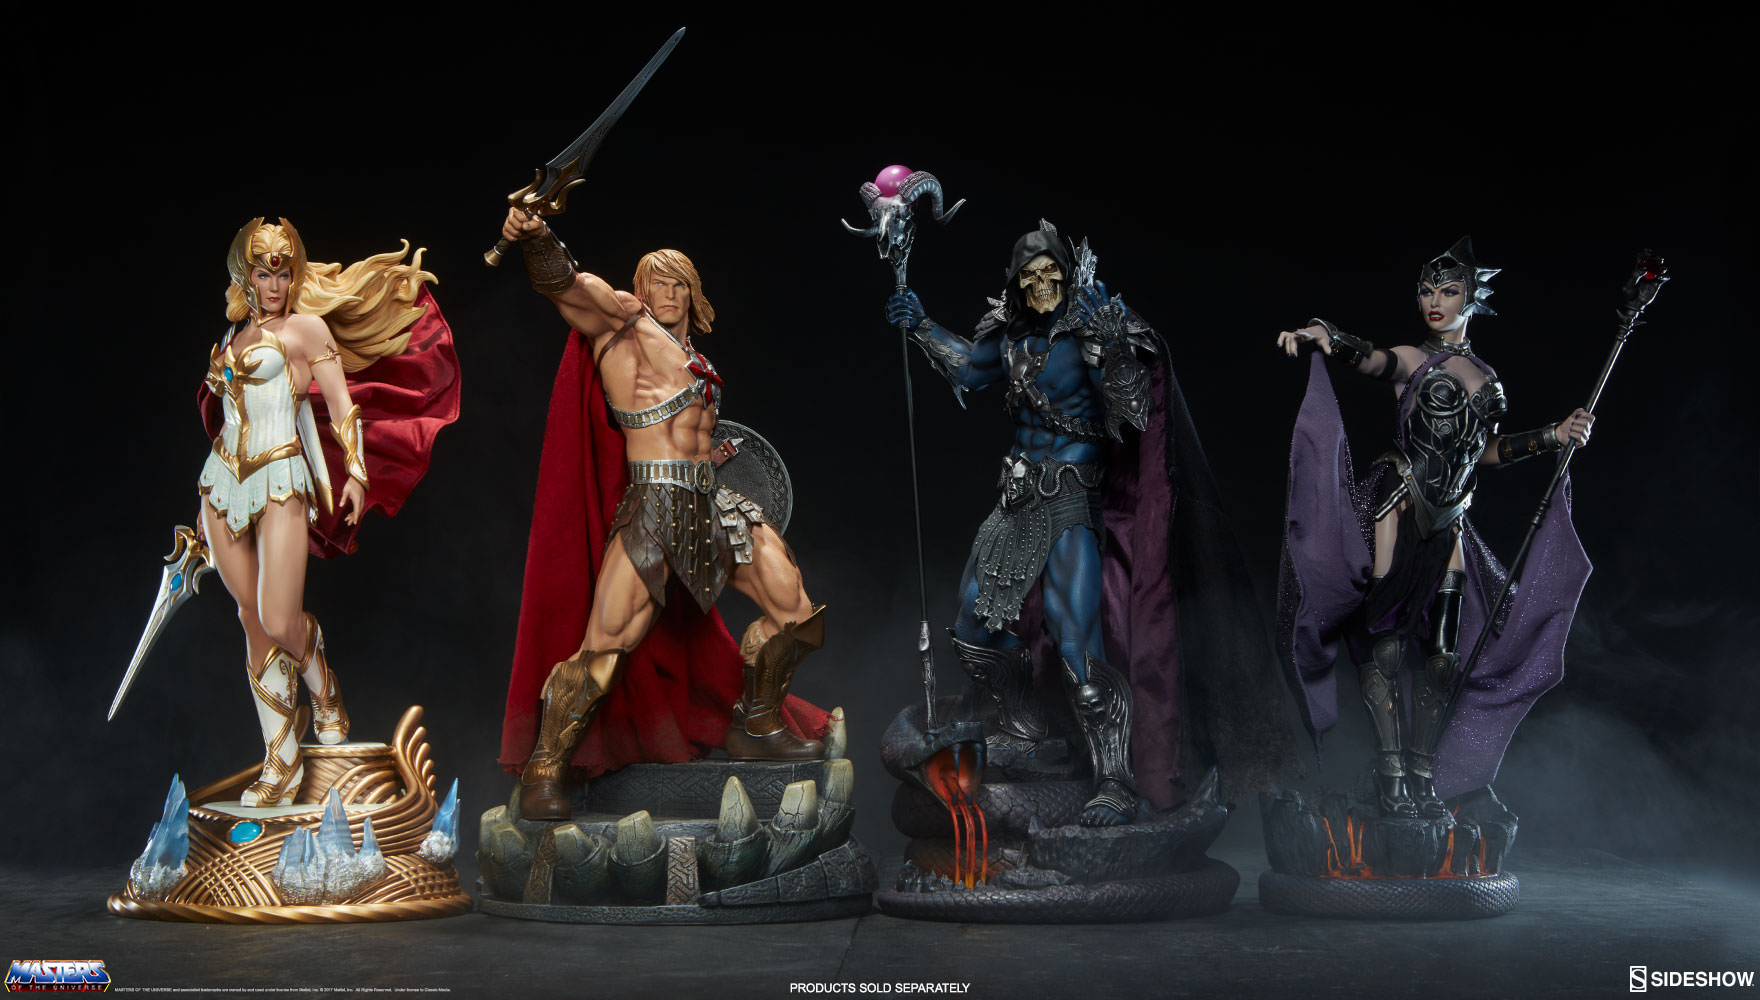 masters-of-the-universe-she-ra-statue-200495-20